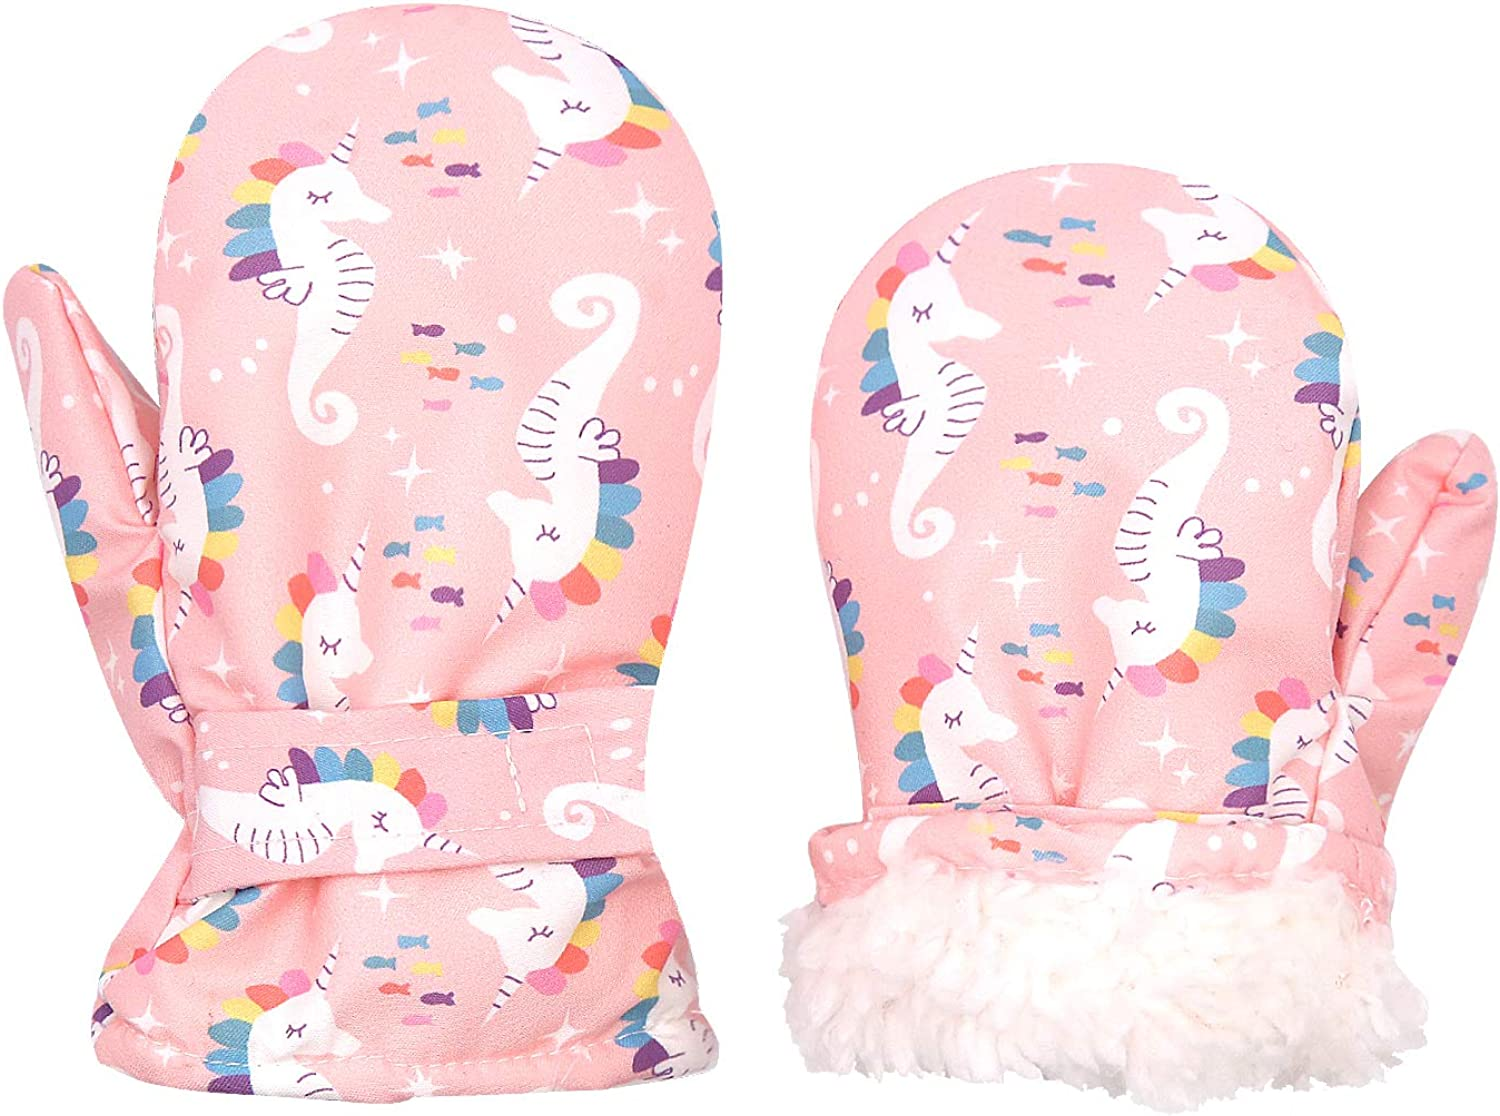 Toddler Waterproof Mittens Fleece Lined Boys W Girls Baby Winter New Max 84% OFF mail order